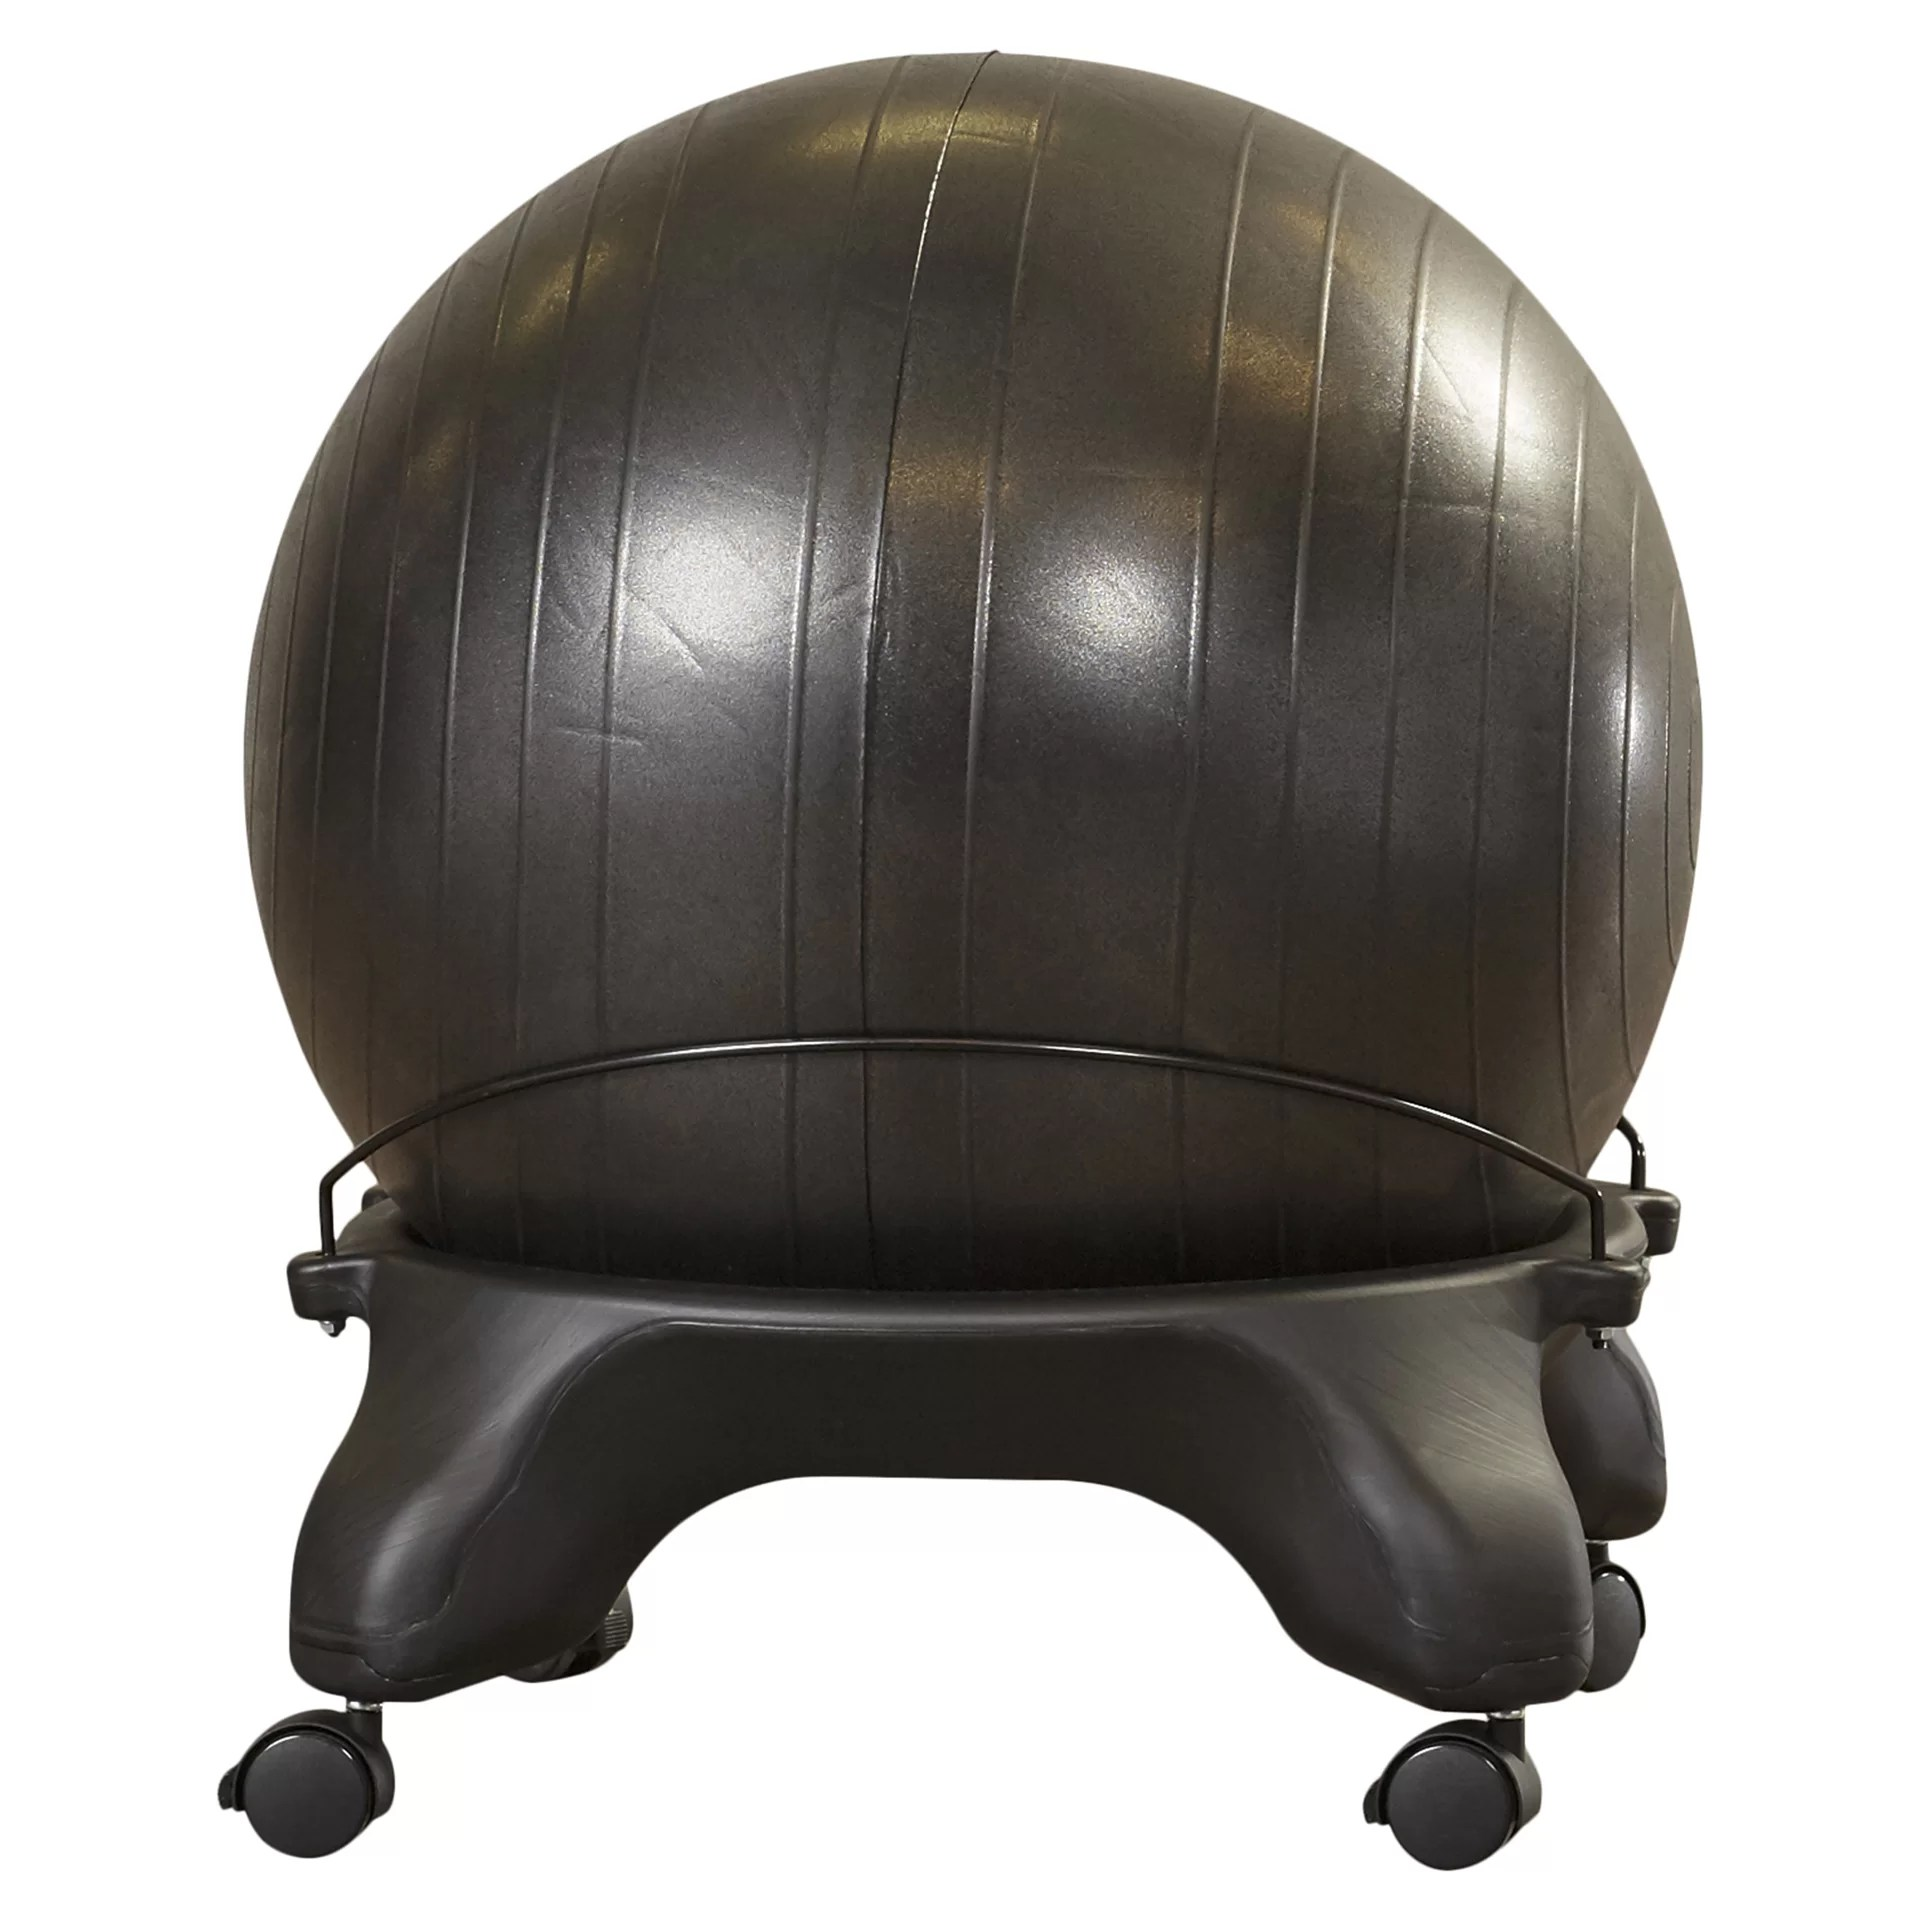 yoga ball chair reviews high belt replacement symple stuff exercise and wayfair